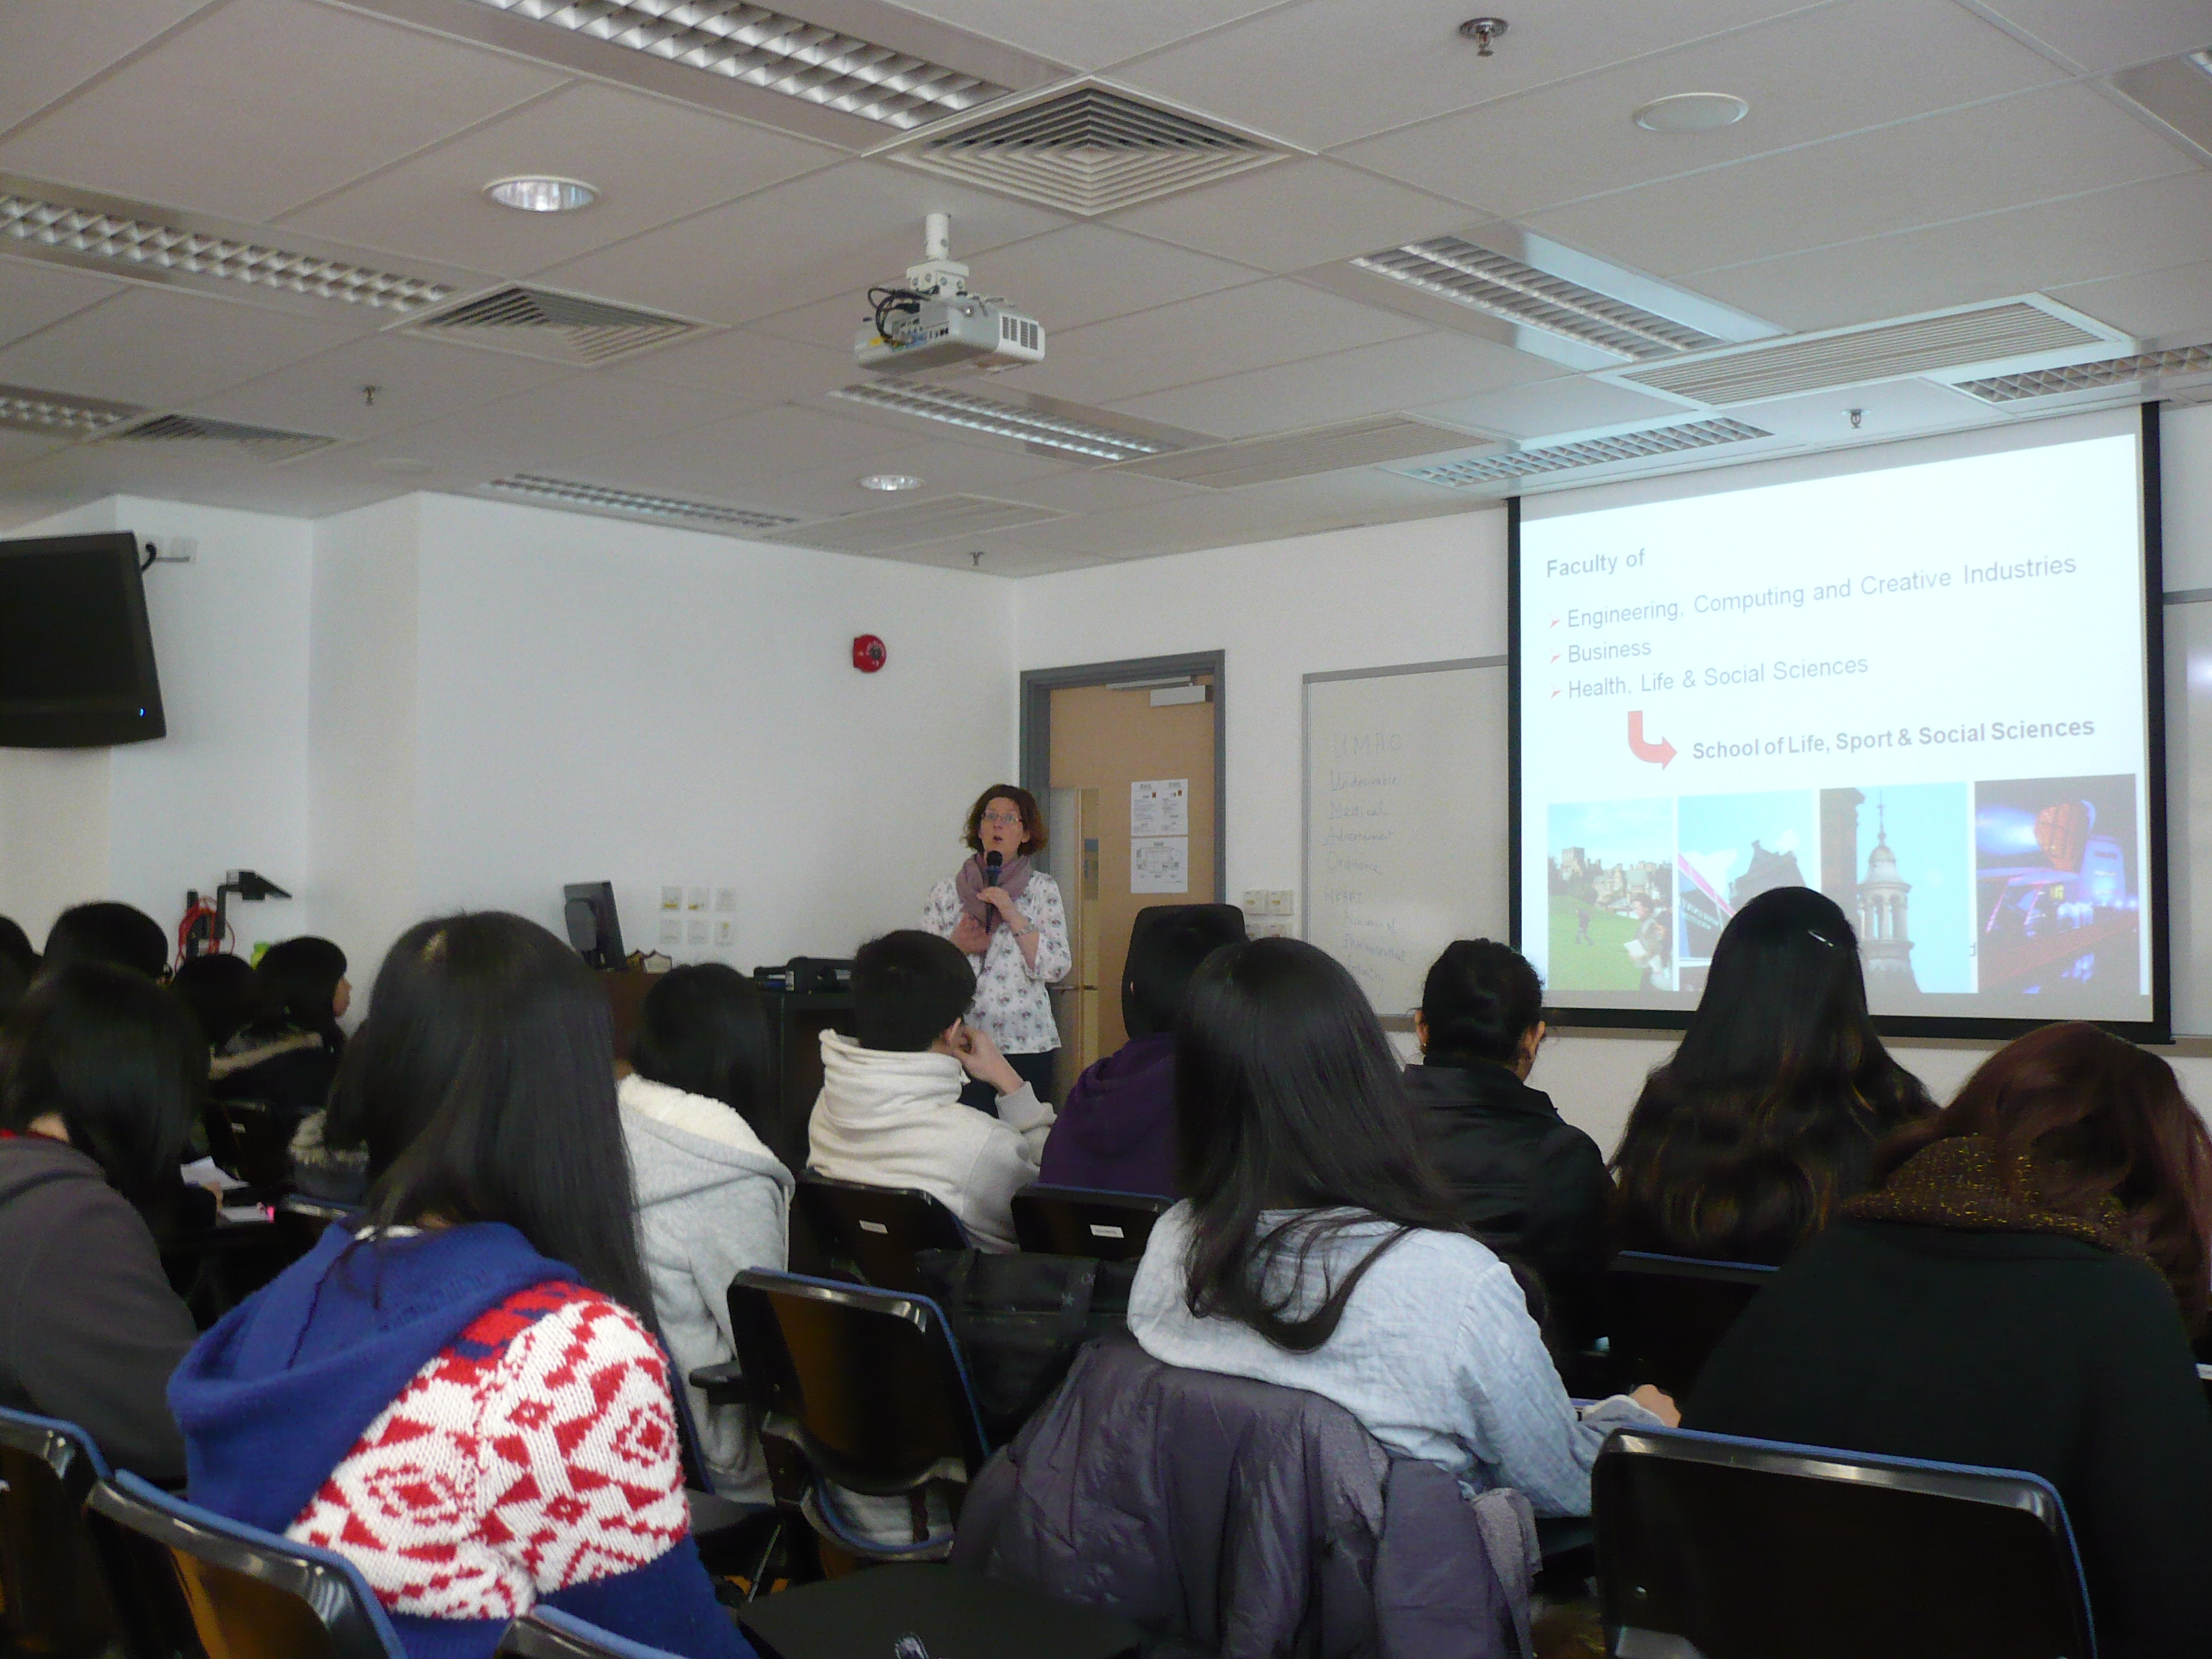 Class Visit and Top-up Degree Programme Introduction (for Year 2 students of the Higher Diploma in Medical and Health Products Management programme) - Photo - 5